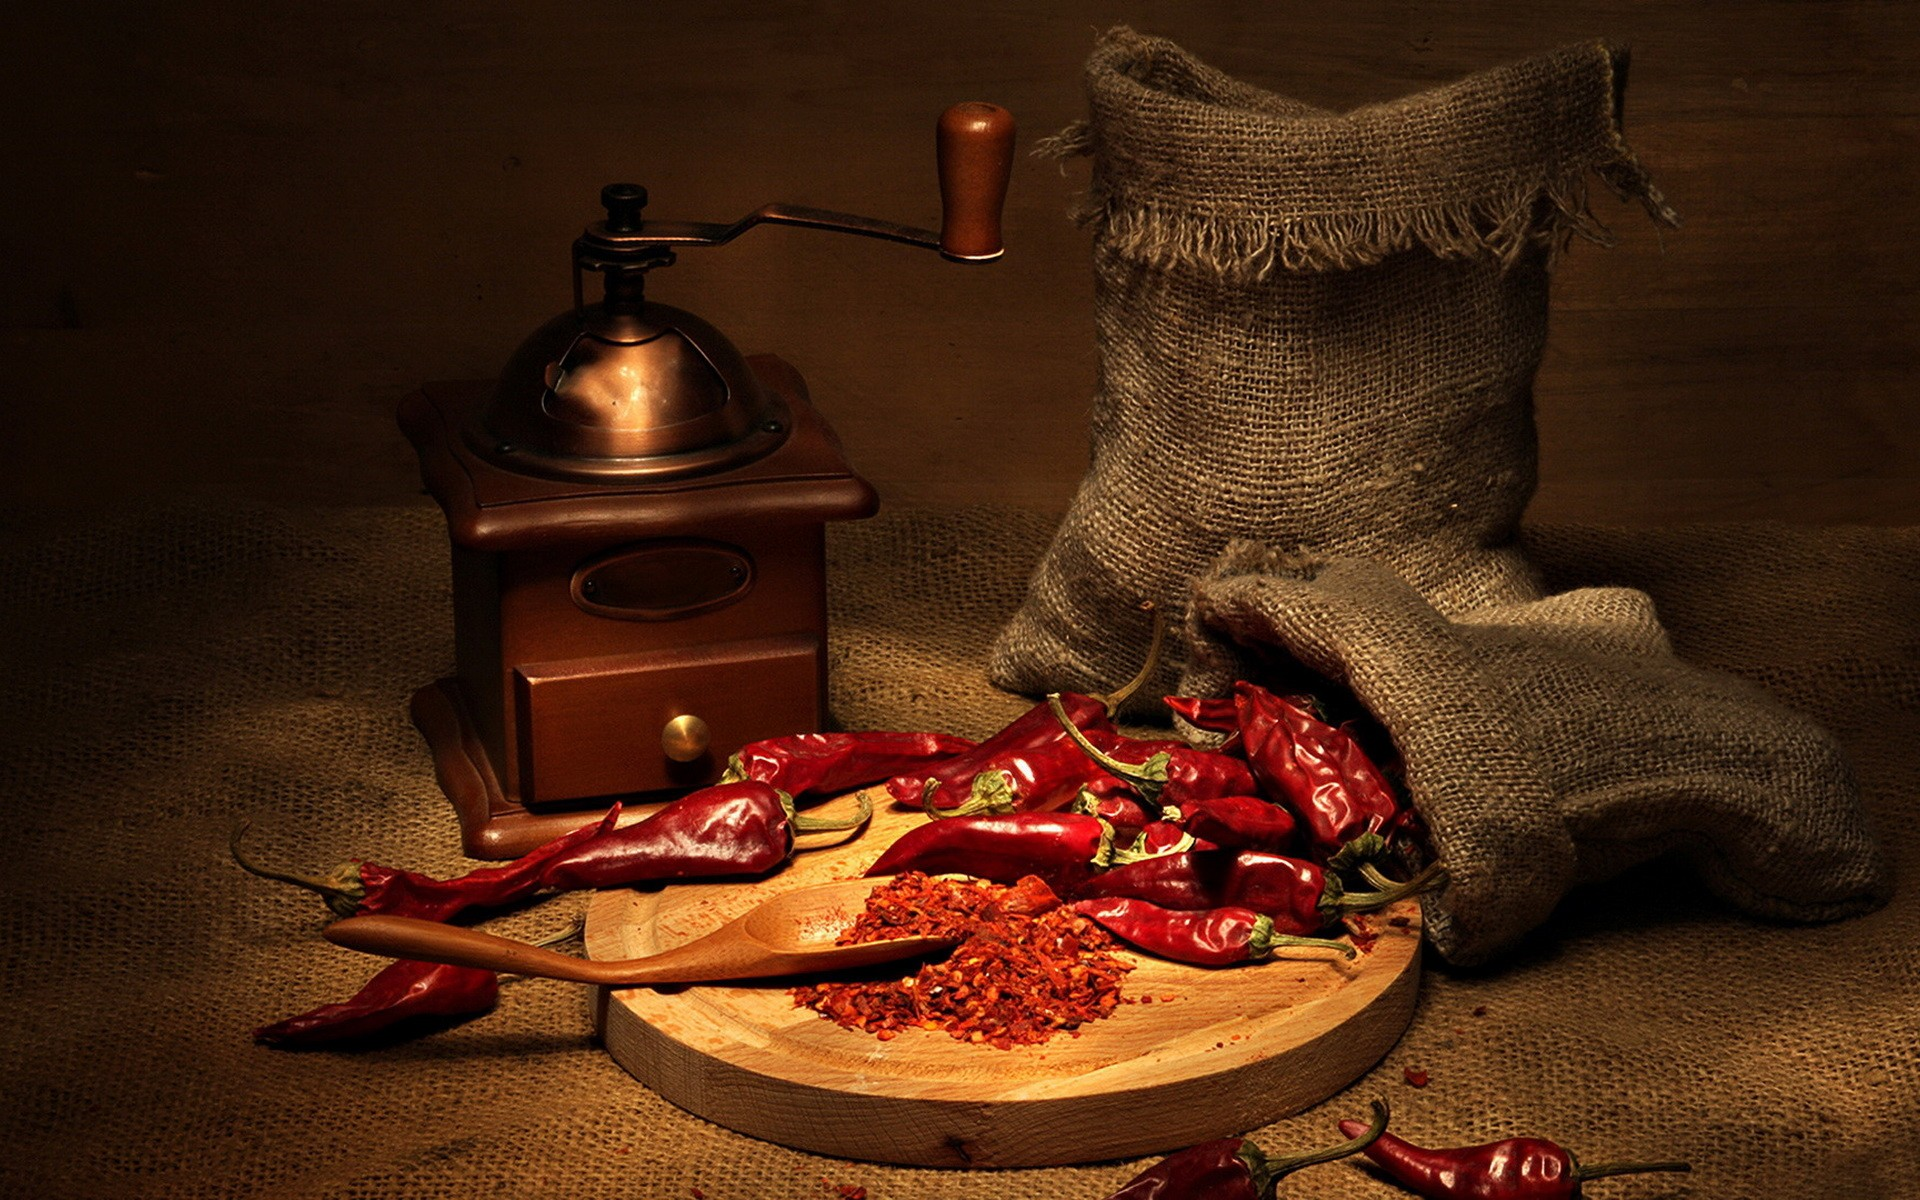 Cayenne pepper and chili mill, wallpaper